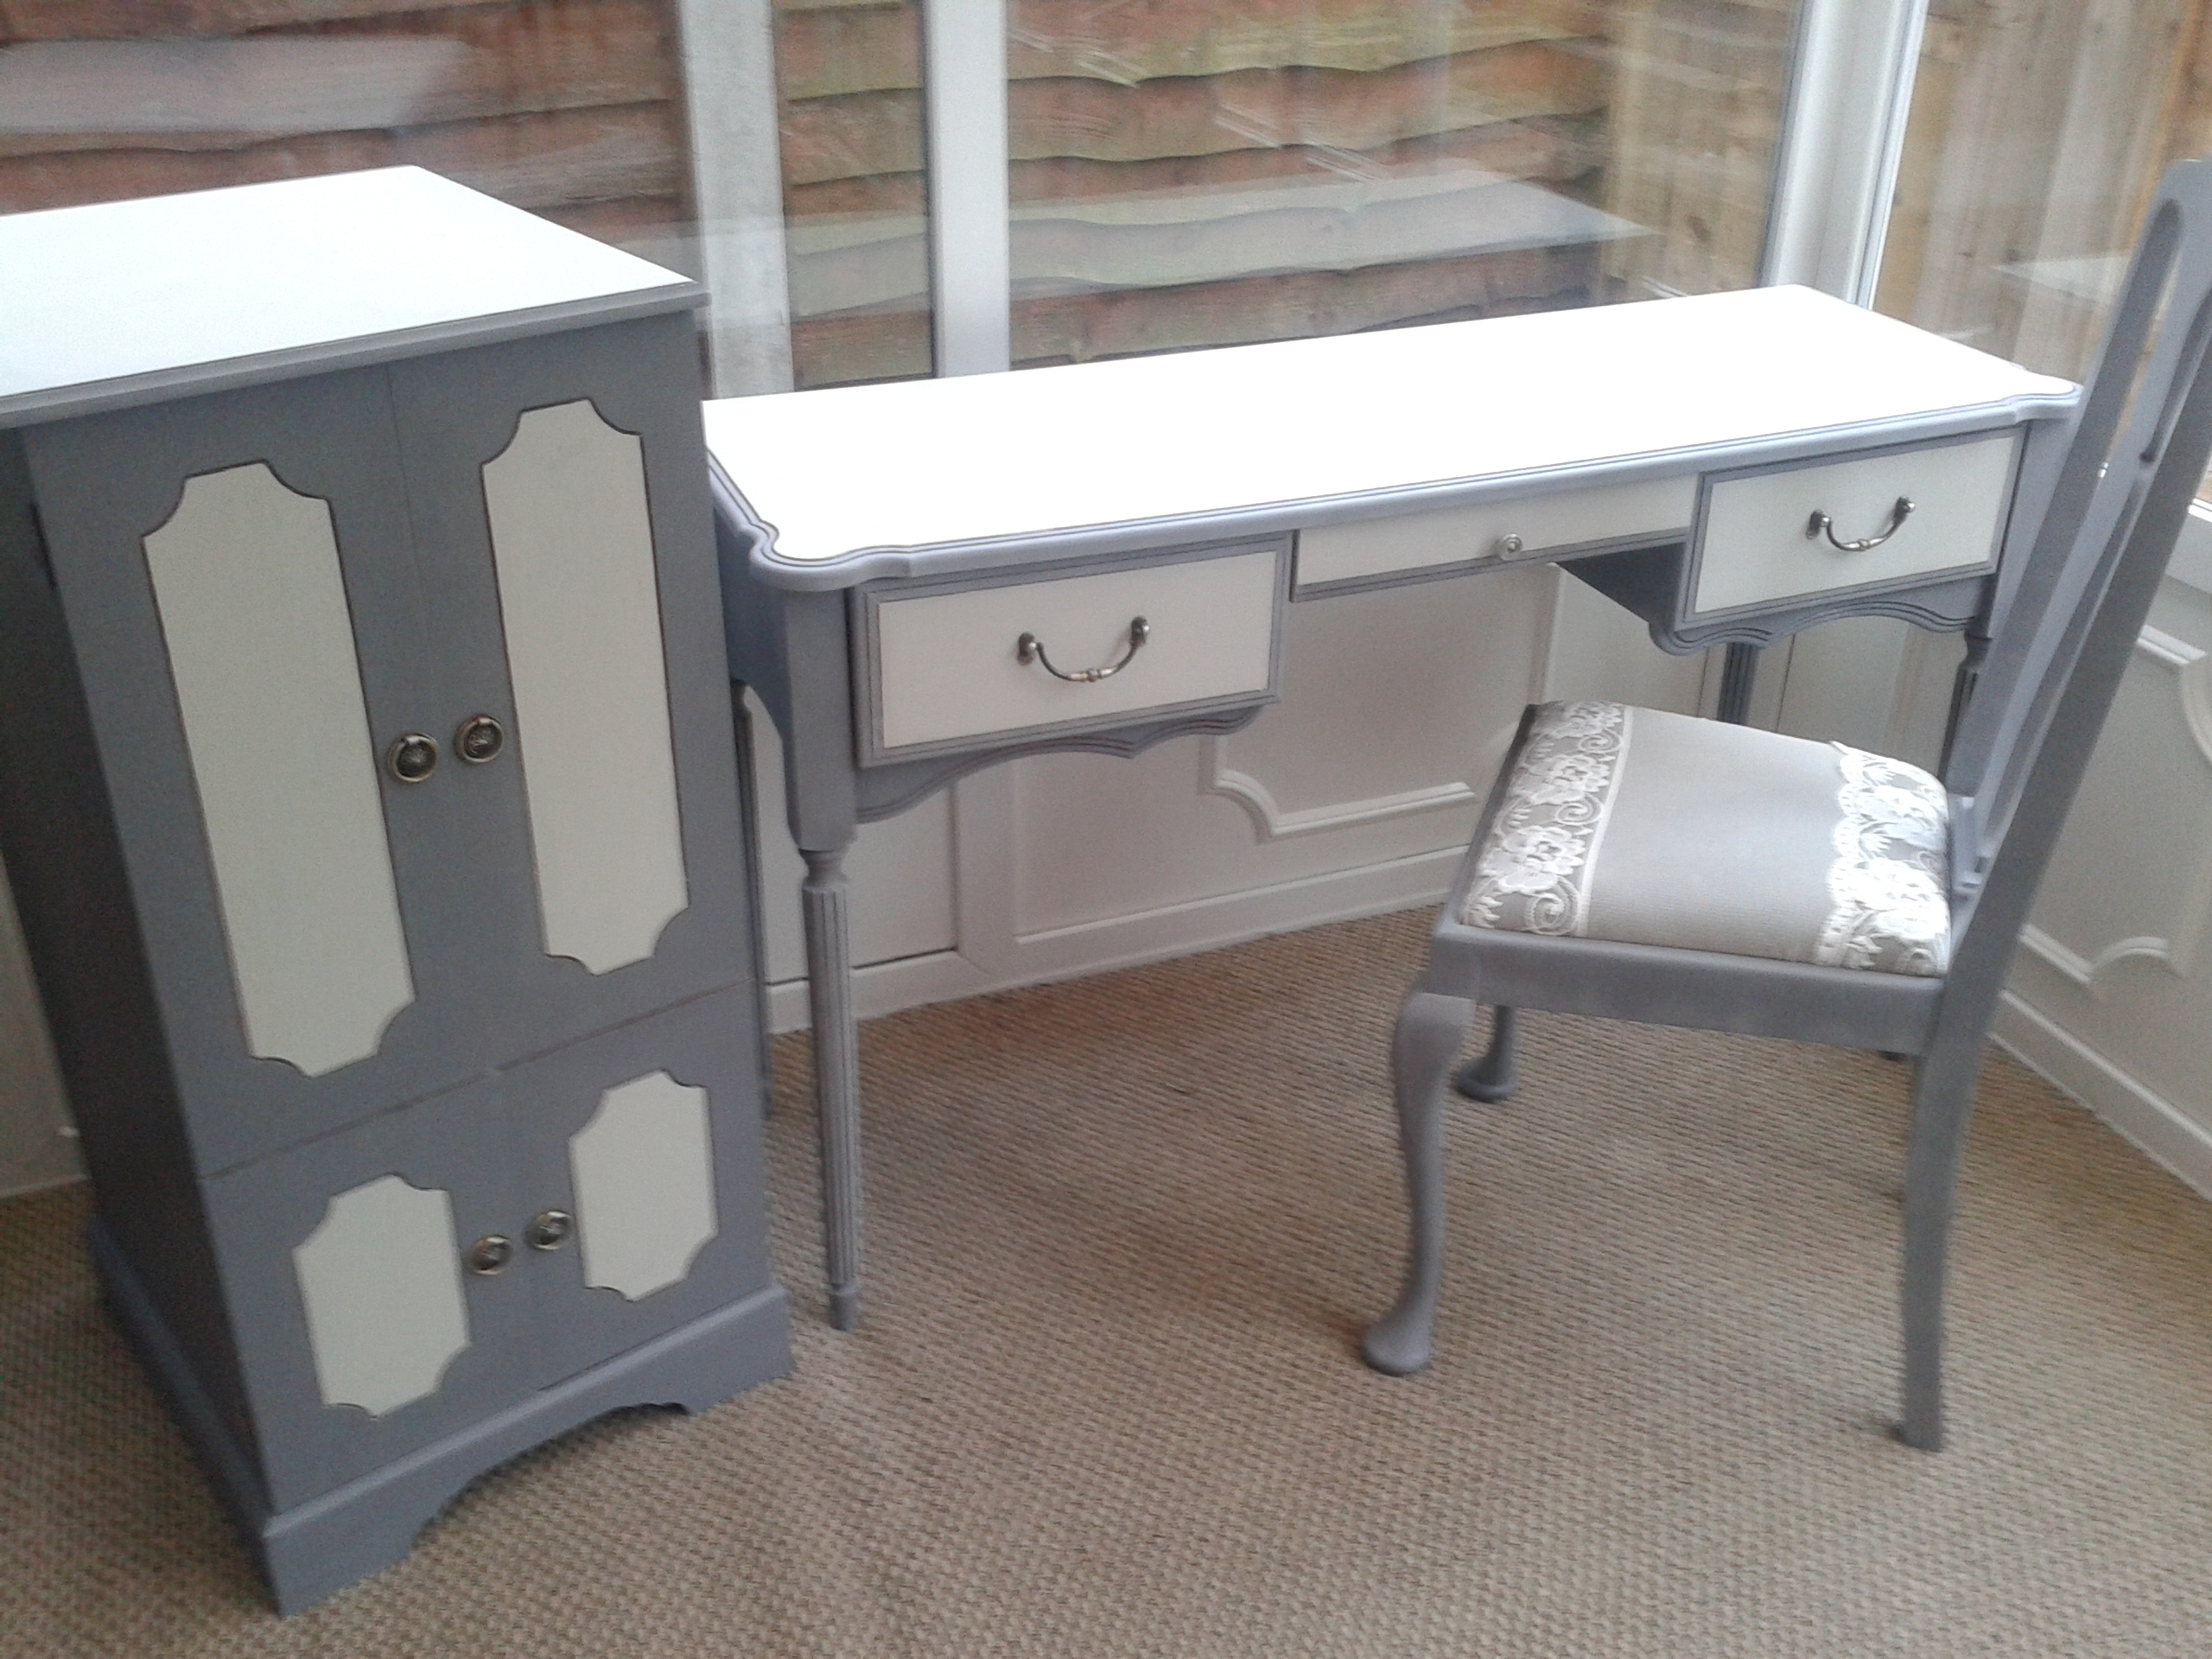 cabinet £45, Desk £145, Chair £35